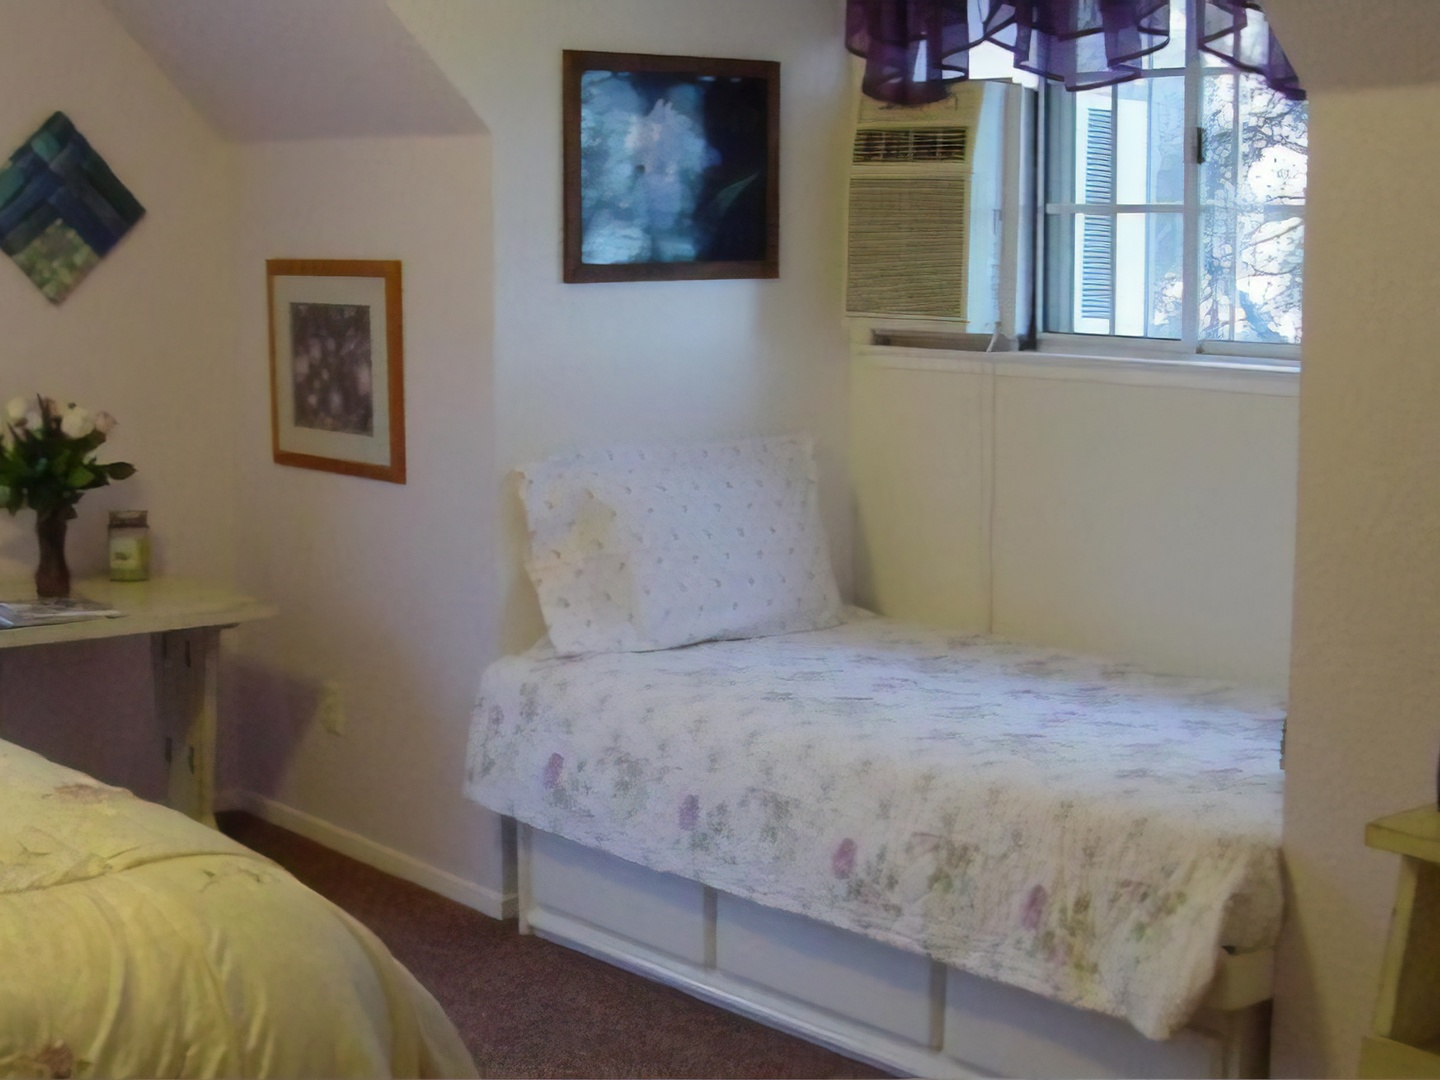 A bedroom with a bed and a window at Apple Blossom Inn Yosemite.